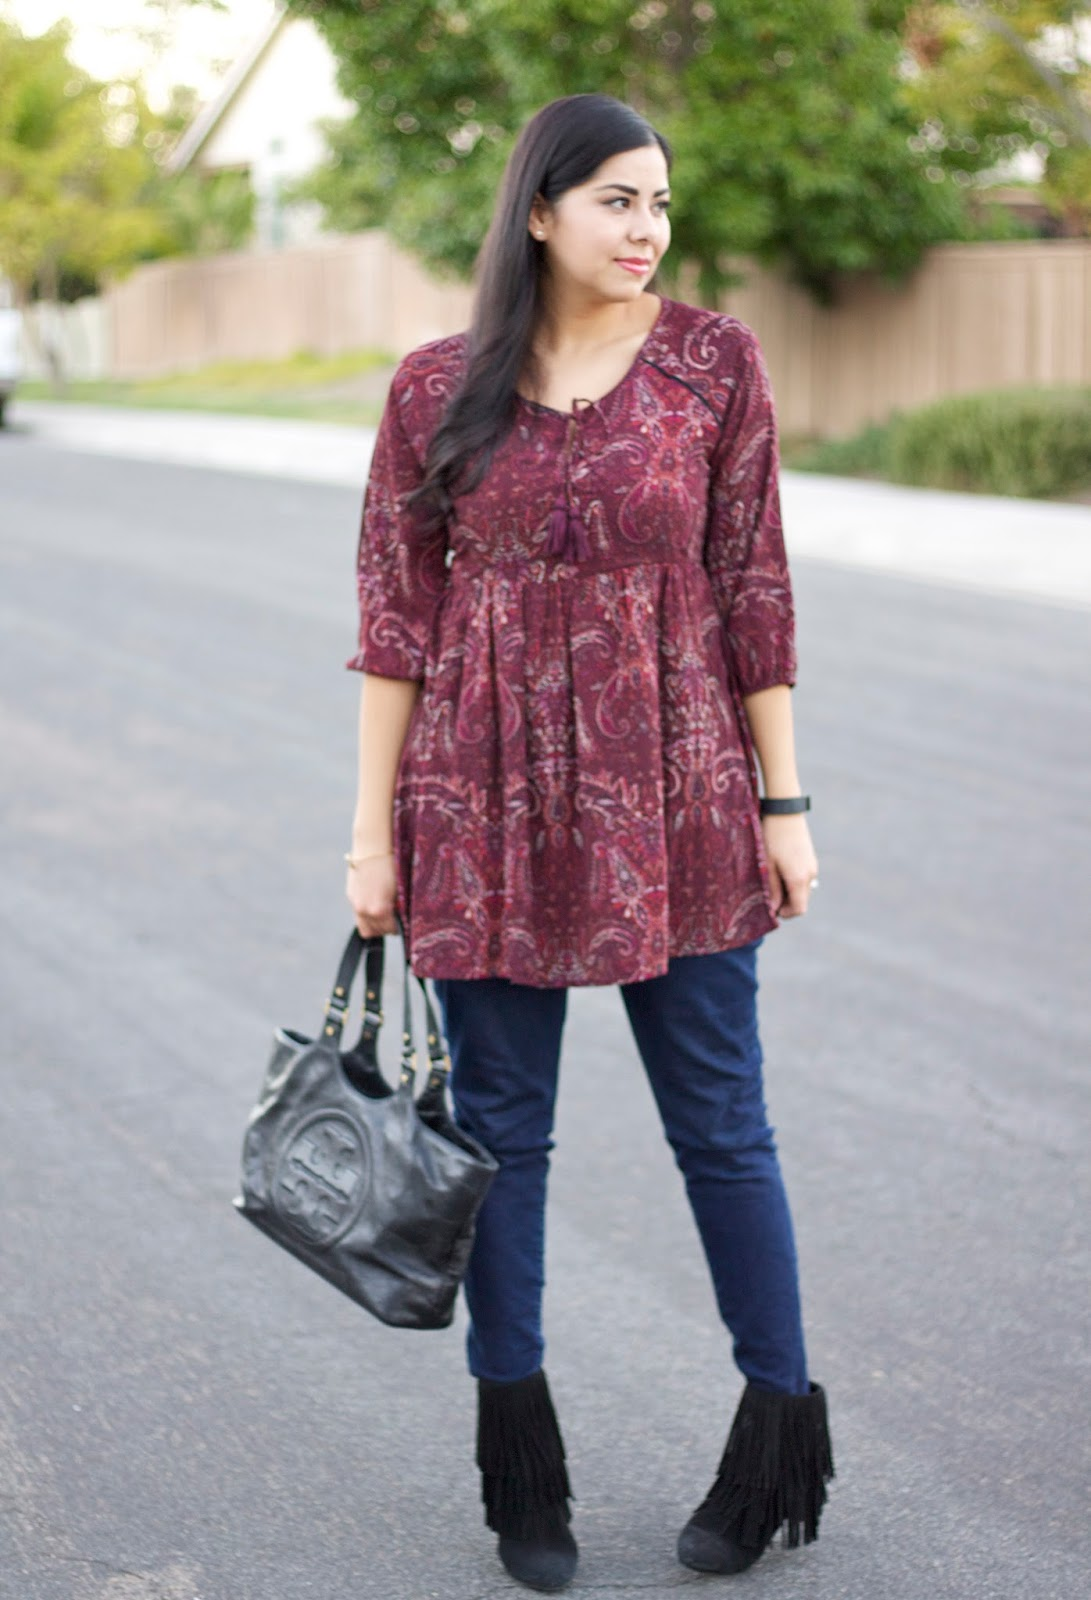 peasant tunic, fall outfit 2015, jeans and paisley tunic, peasant top and jeans